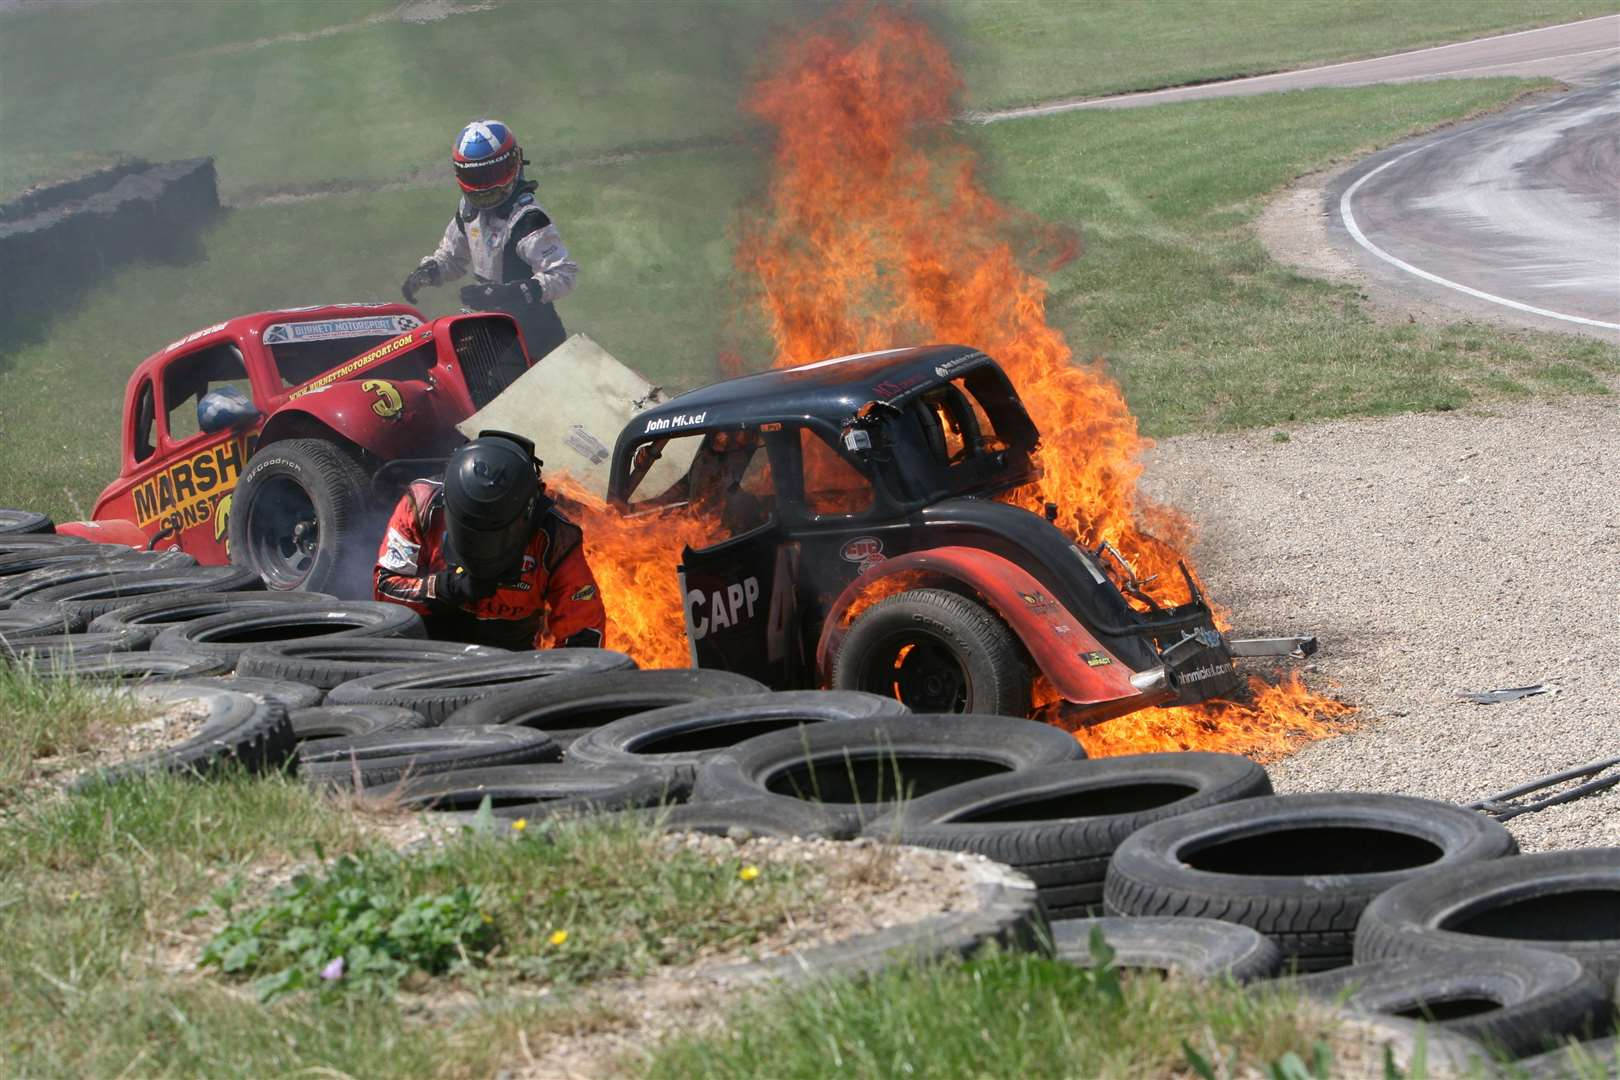 Two Legends drivers - Ross Marshall and John Mickel - were lucky to escape from this fiery crash at Lydden Hill in June 2010. Picture: Kerry Dunlop